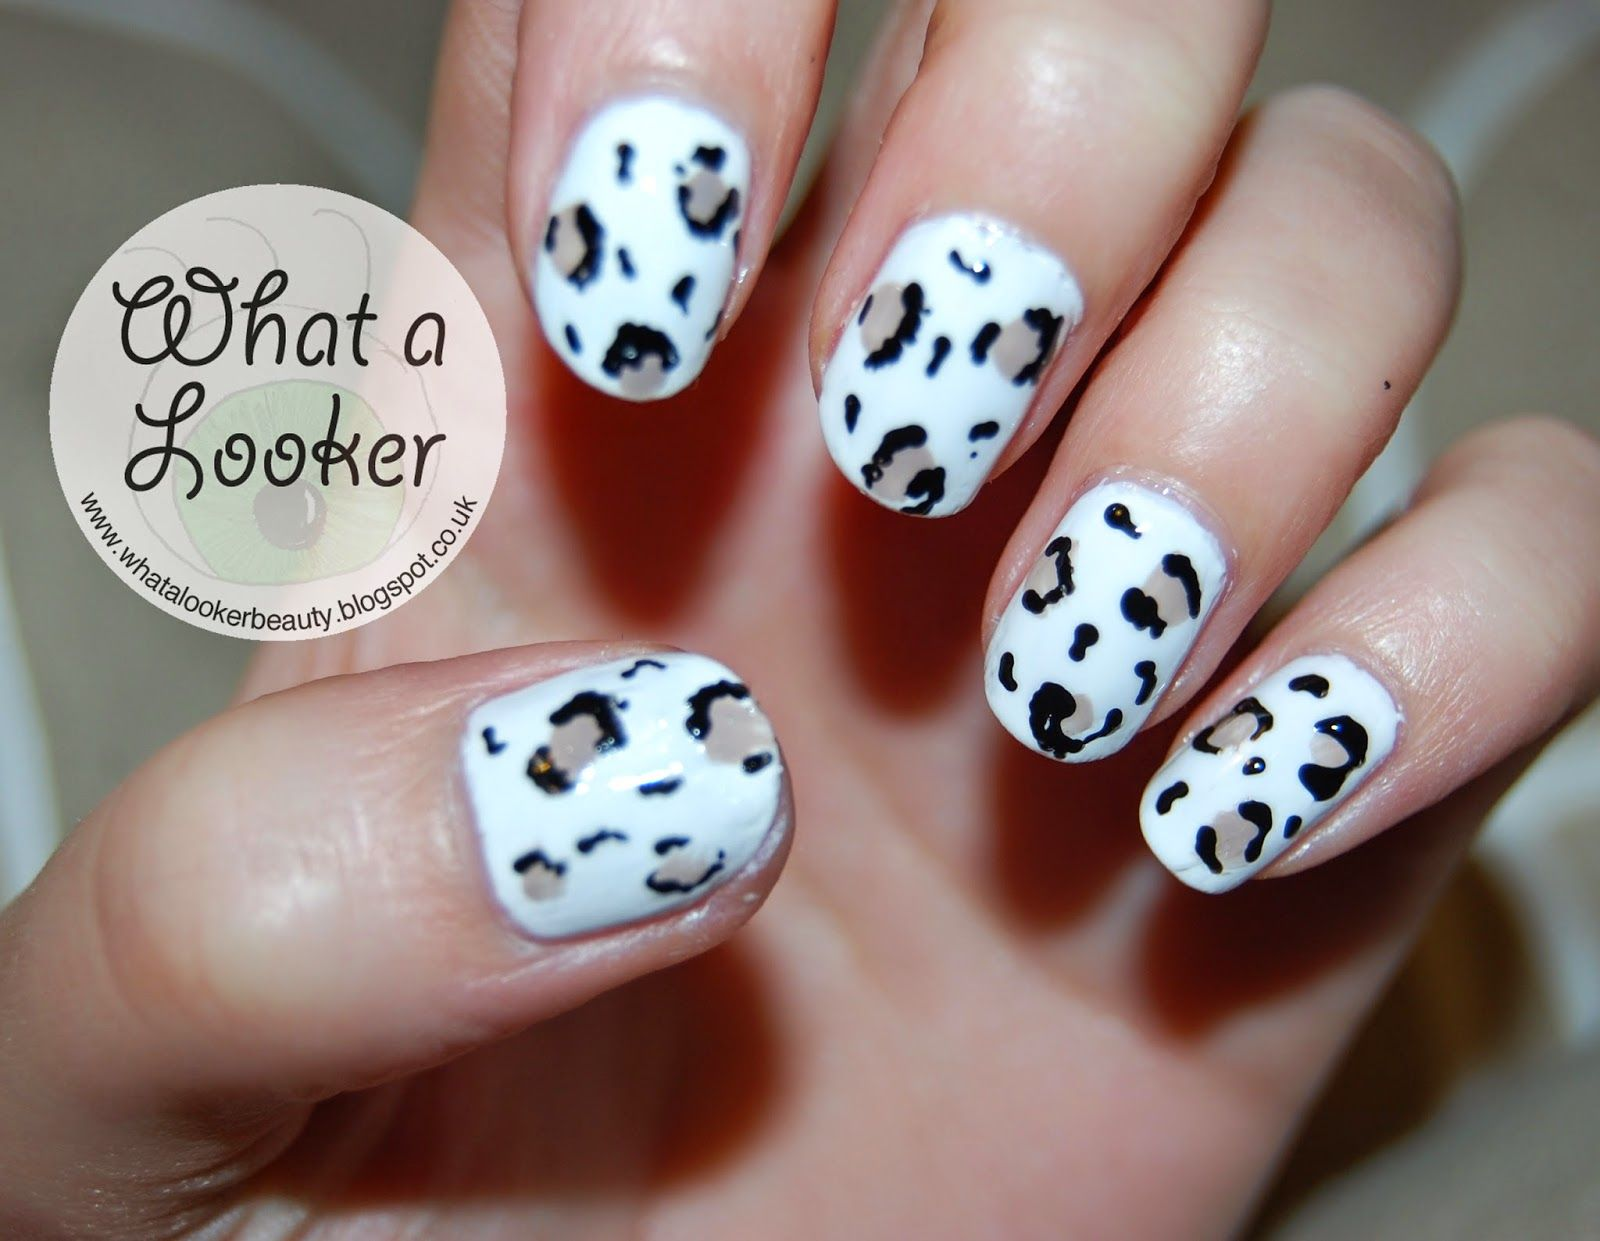 what a looker: December Nail Art Challenge | My Nail Designs ...